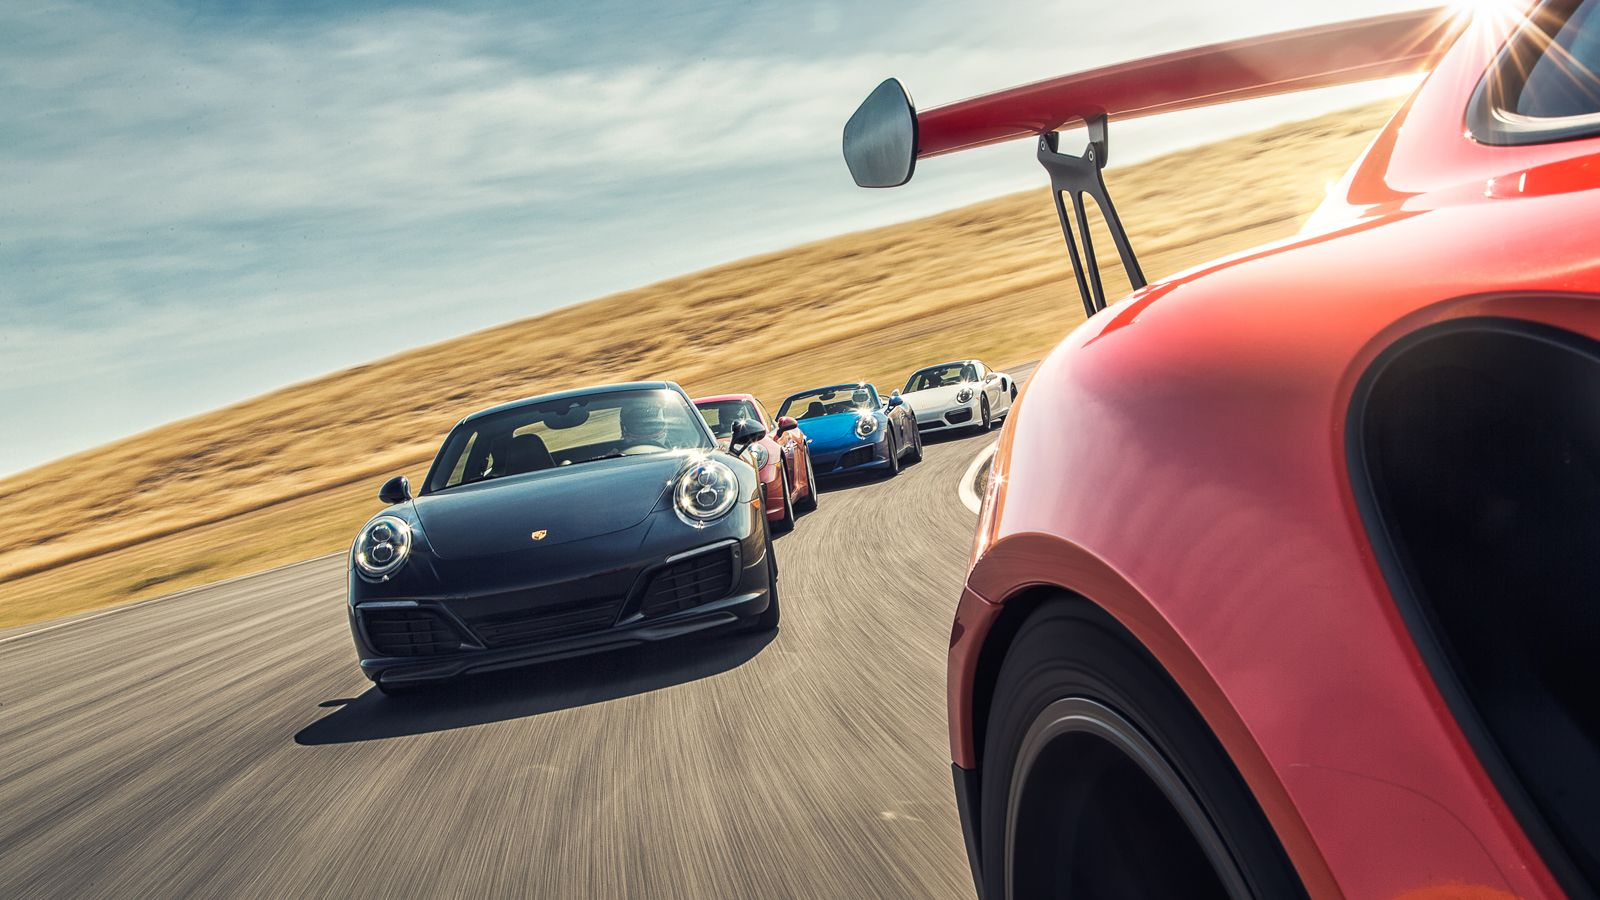 These 17 Tips Will Help You Take Great Car Photos